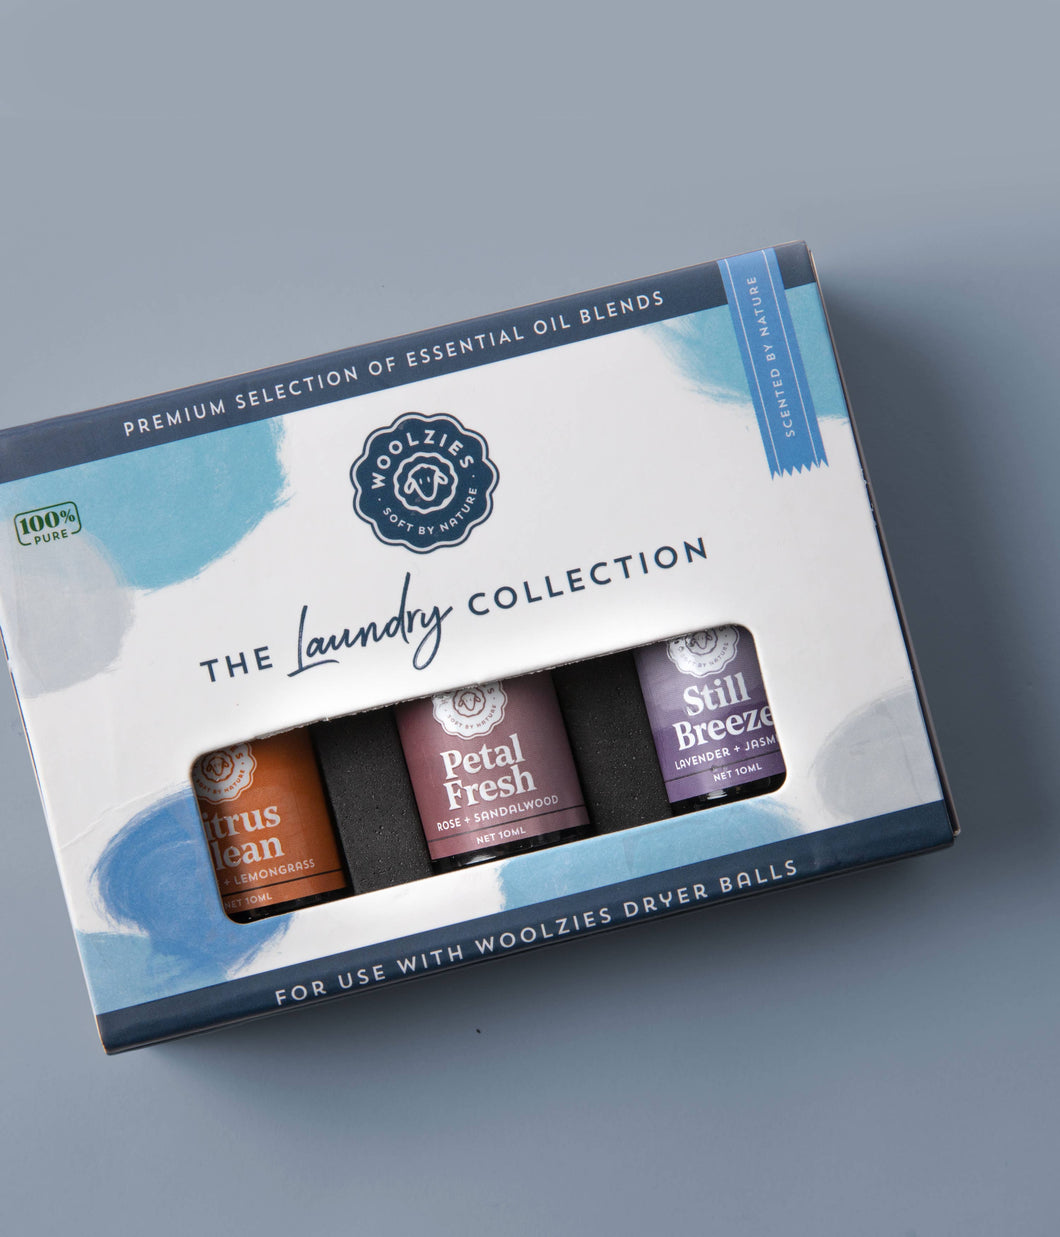 Woolzies - The Laundry Essential Oil Collection